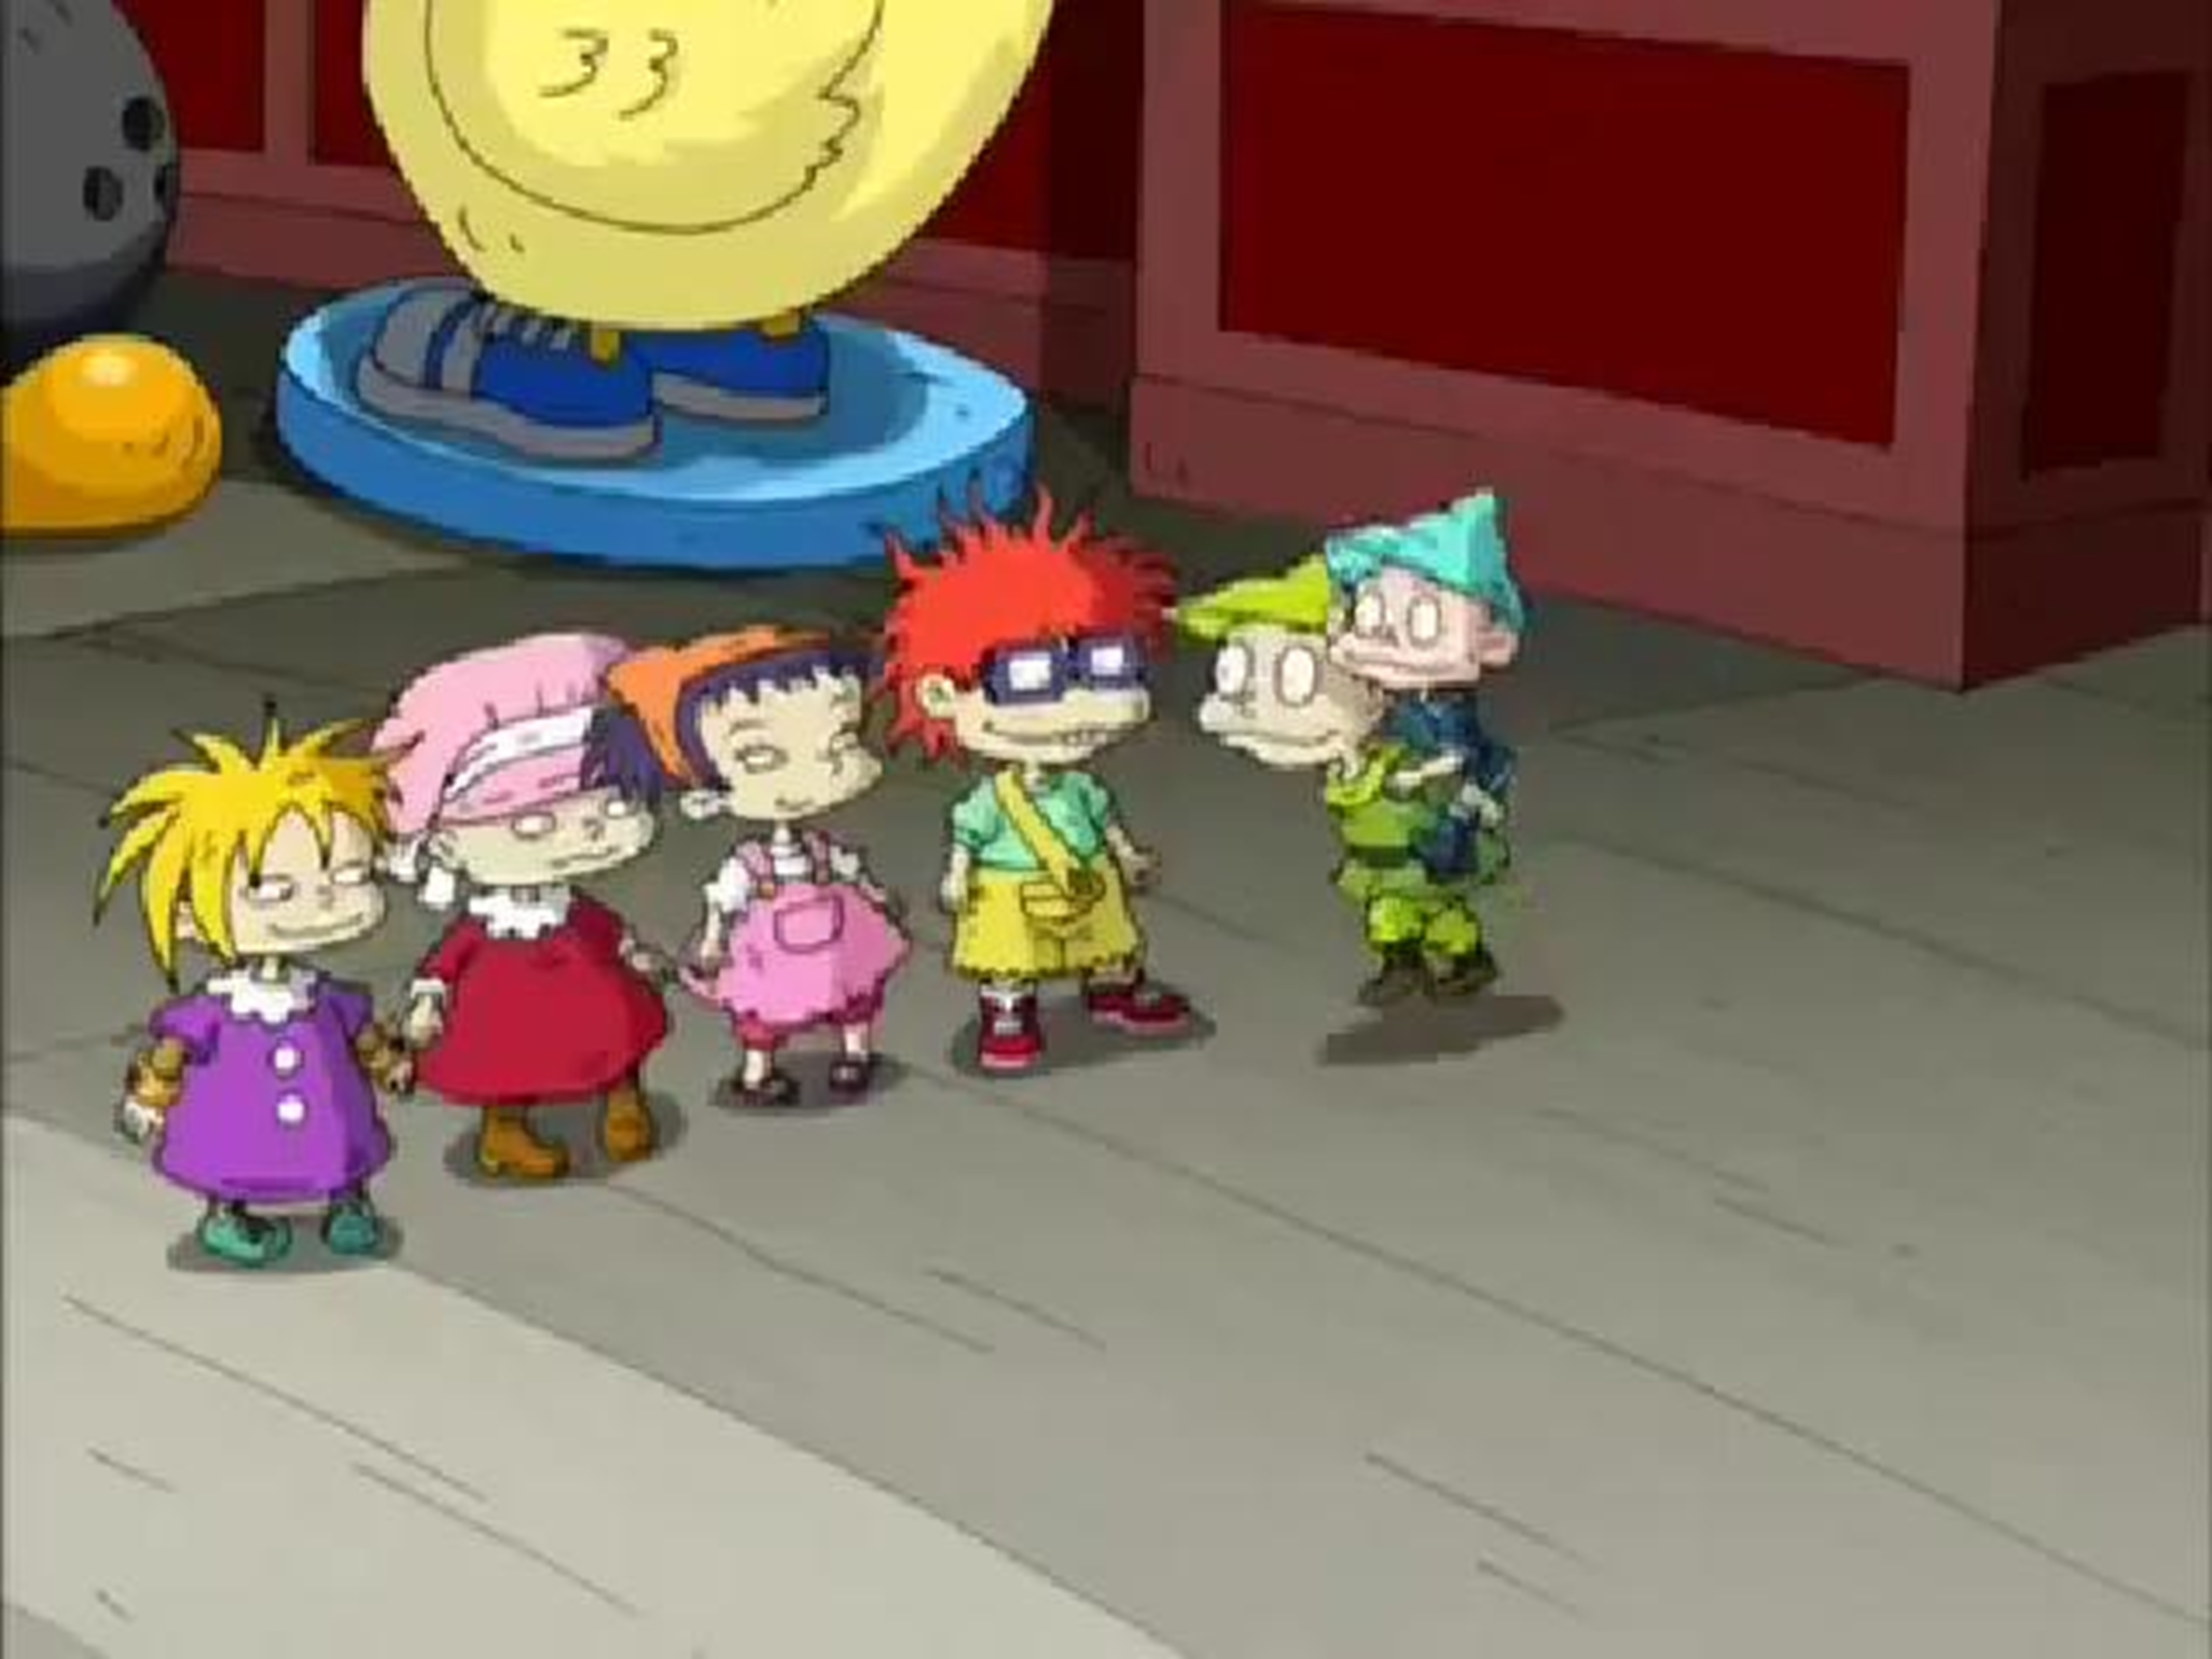 Rugrats Tales from the Crib: Three Jacks and a Beanstalk 1152